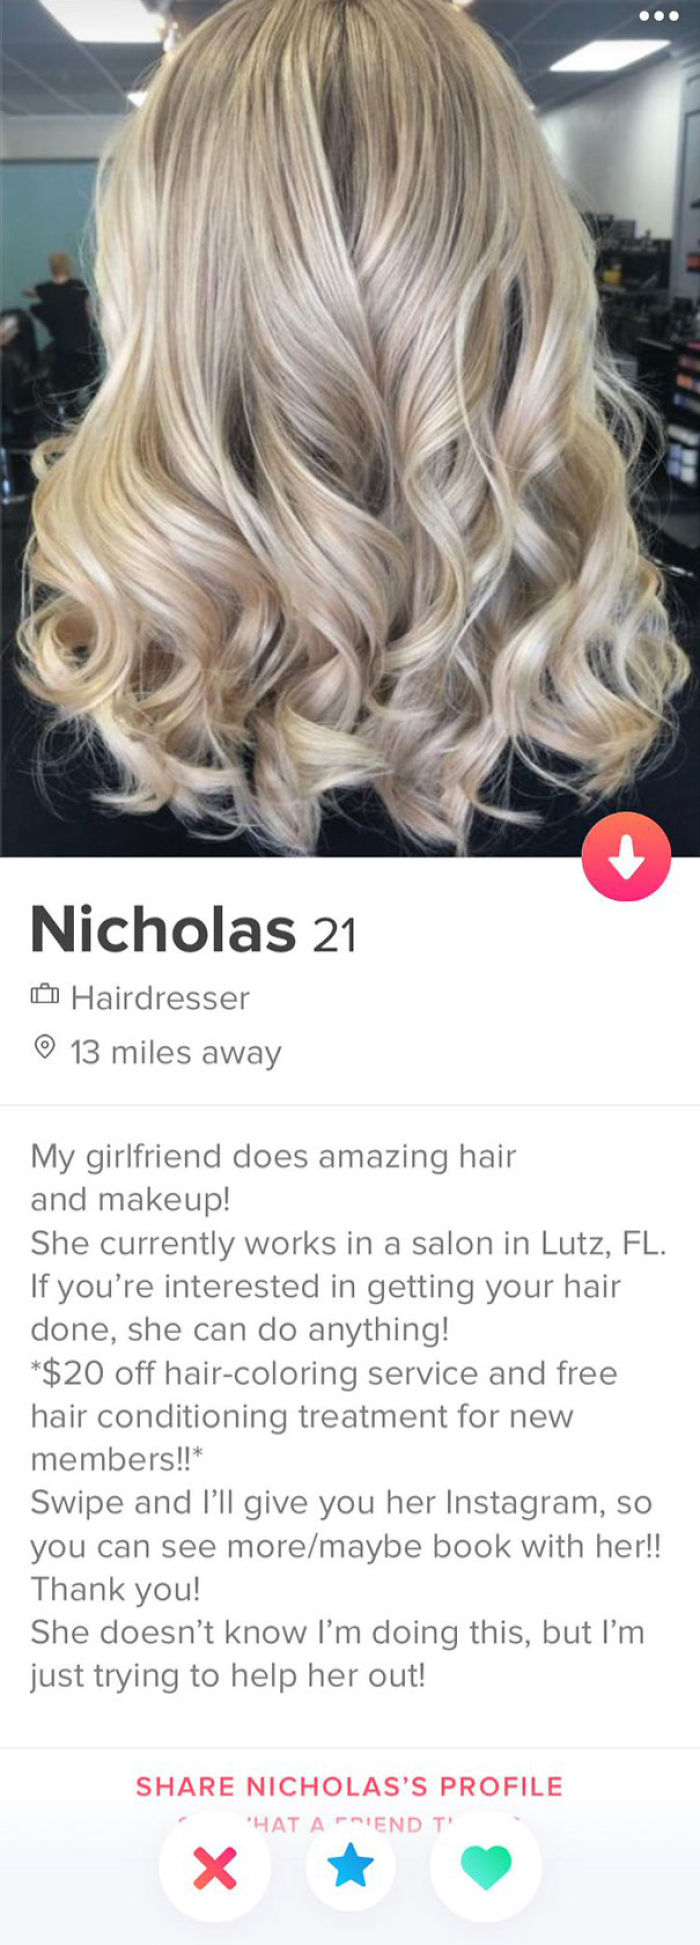 I Was Swiping On Tinder And This Came Up. Someone Give This Man A Medal, My Heart Is So Warm